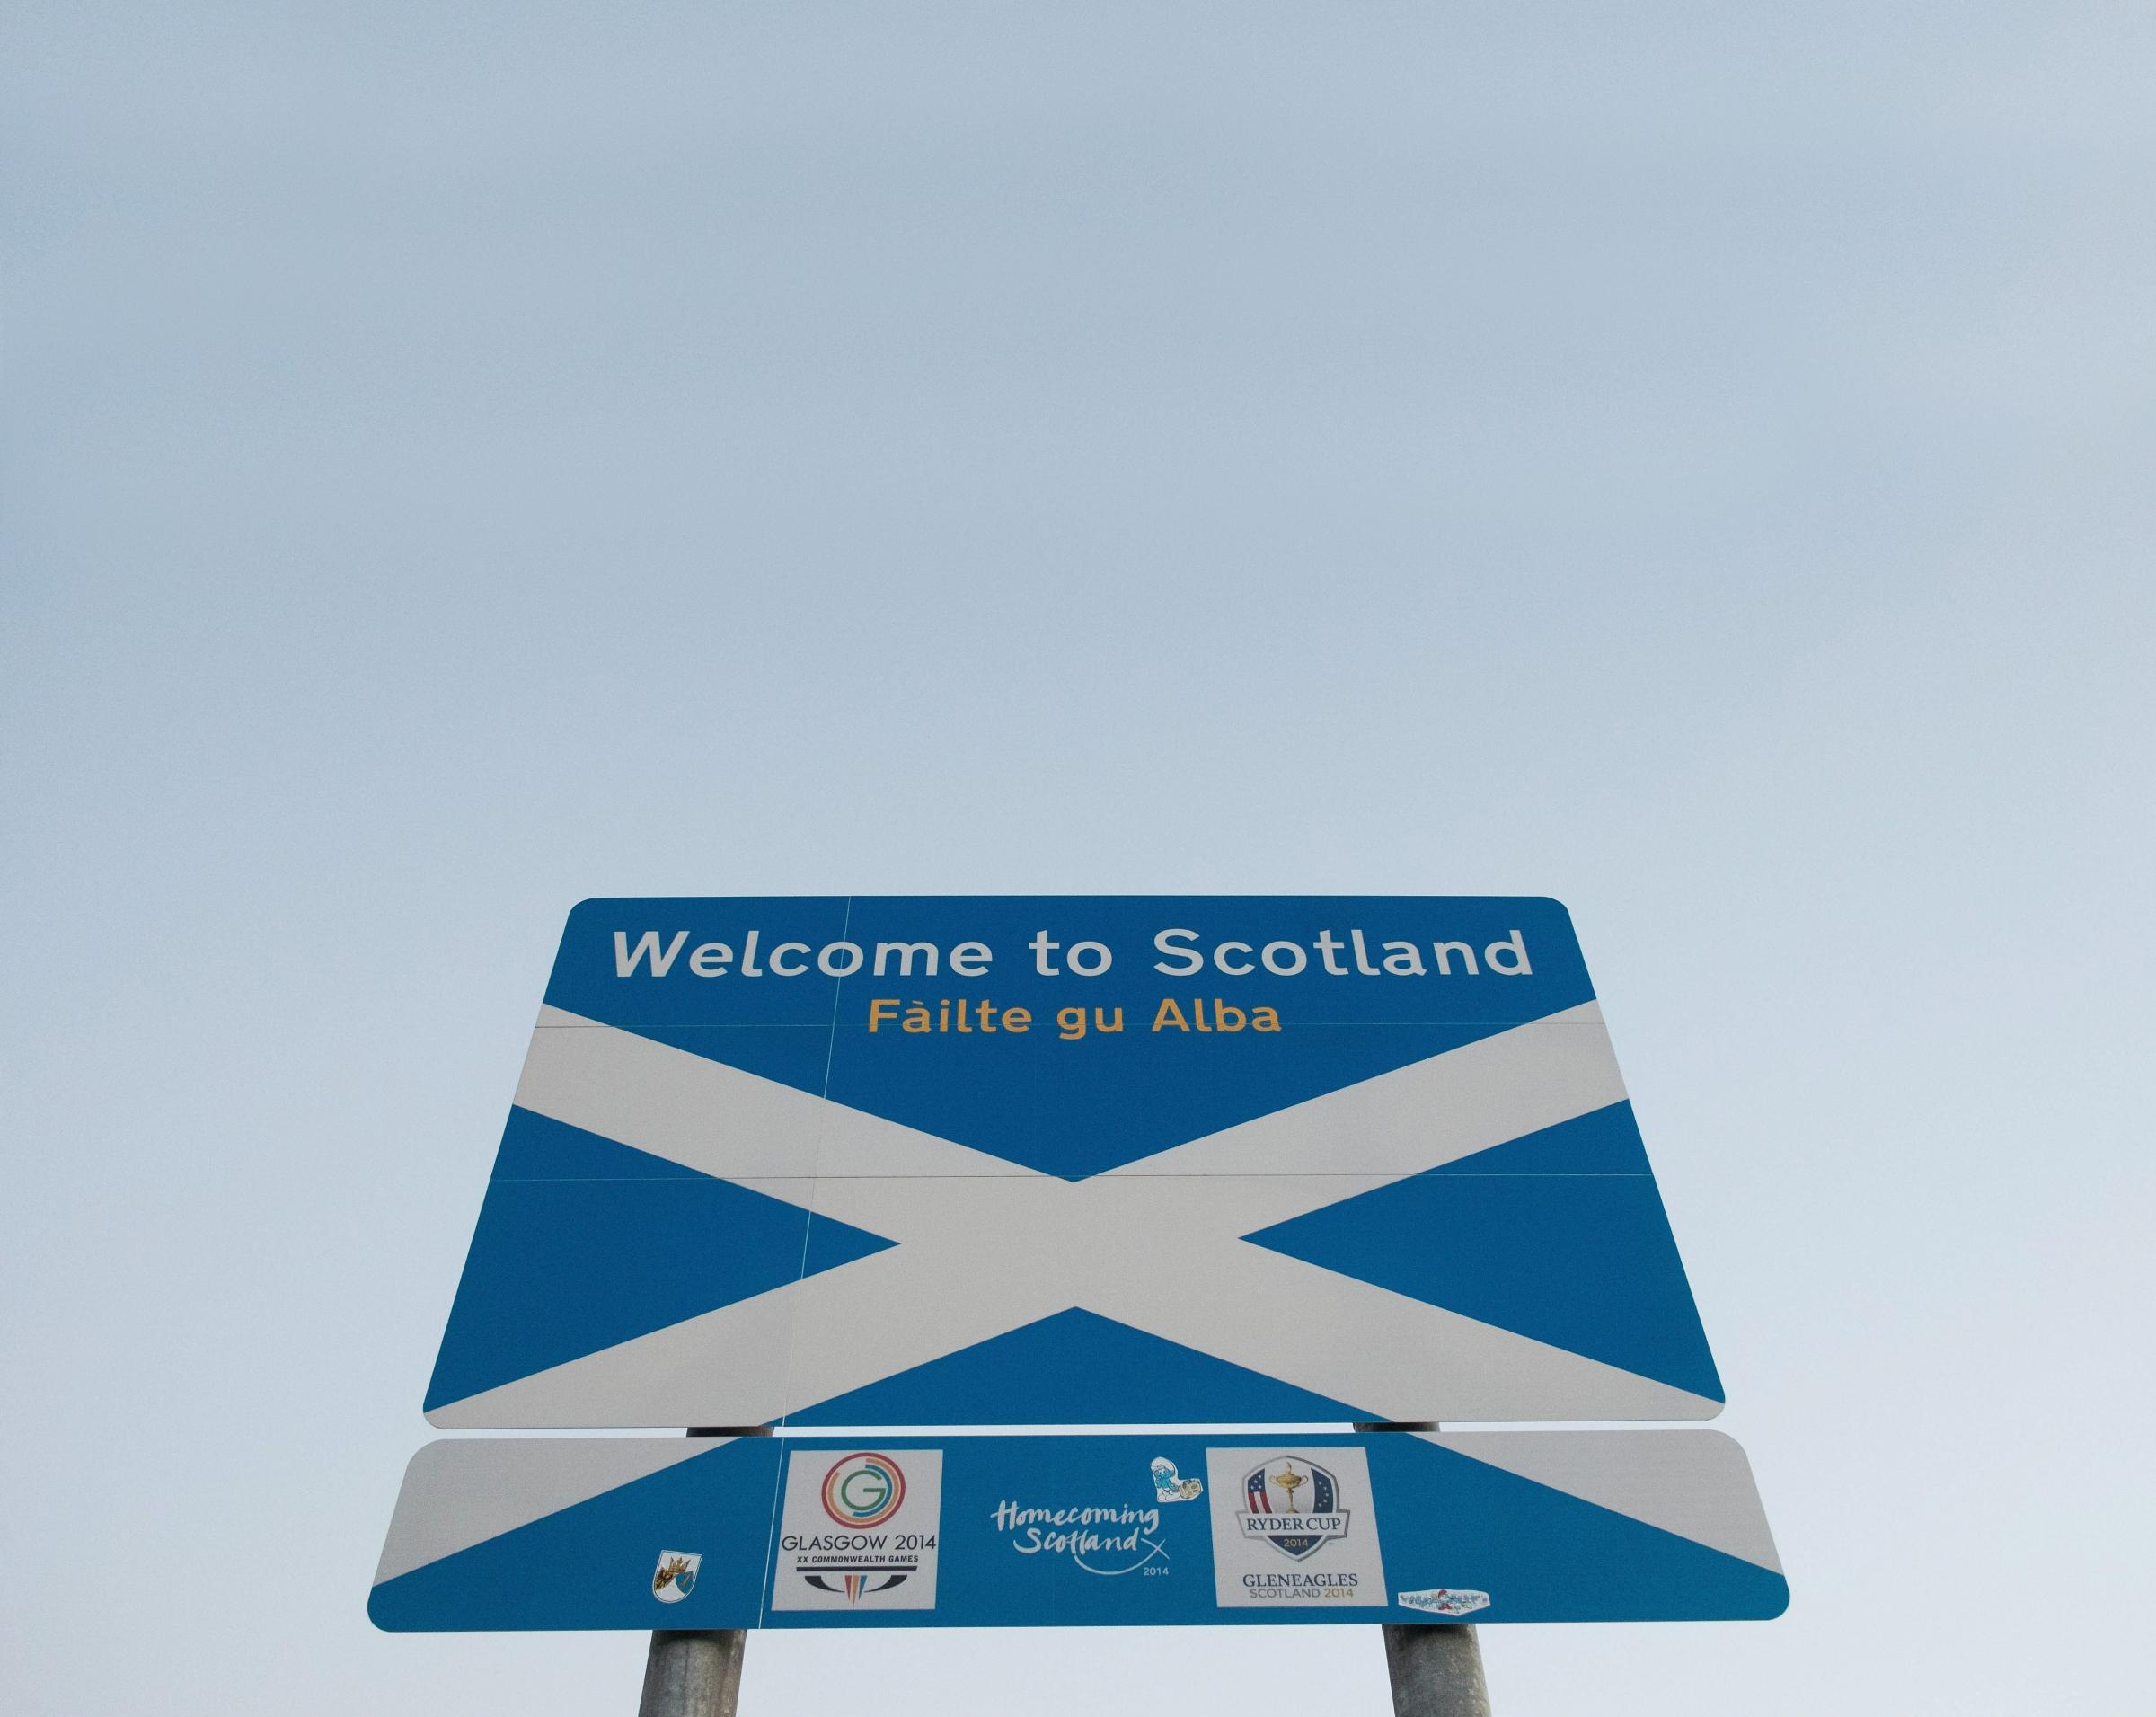 EU nationals will always be warmly welcomed in Scotland